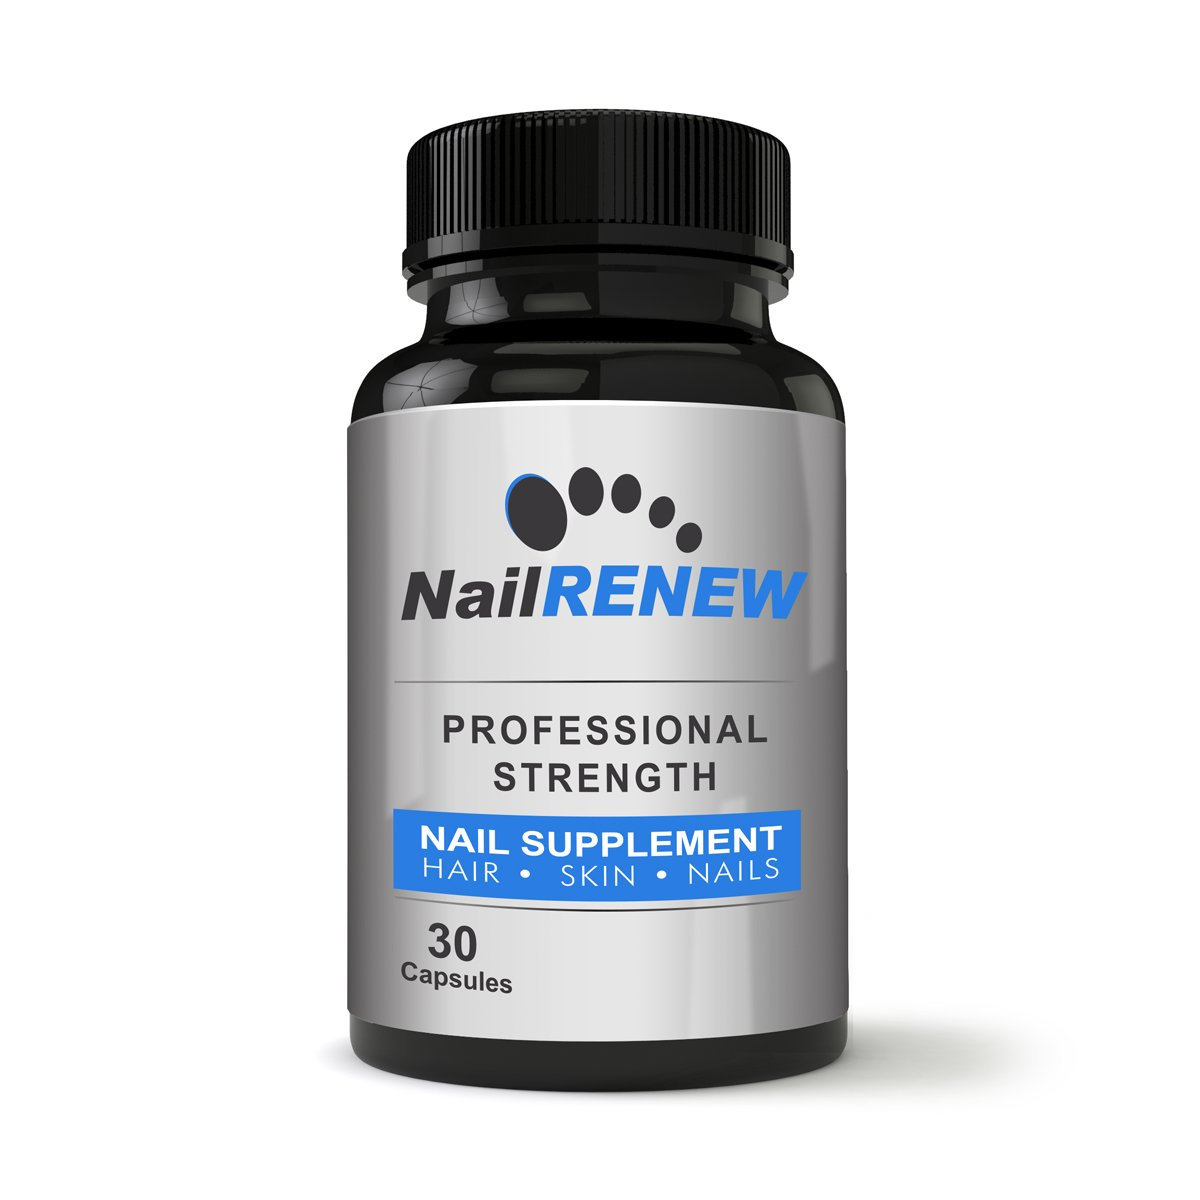 NailRENEW Daily Nail Supplement - Professional Strength Biotin/Vitamin Blend, 30 Capsules NailRENEW Corp